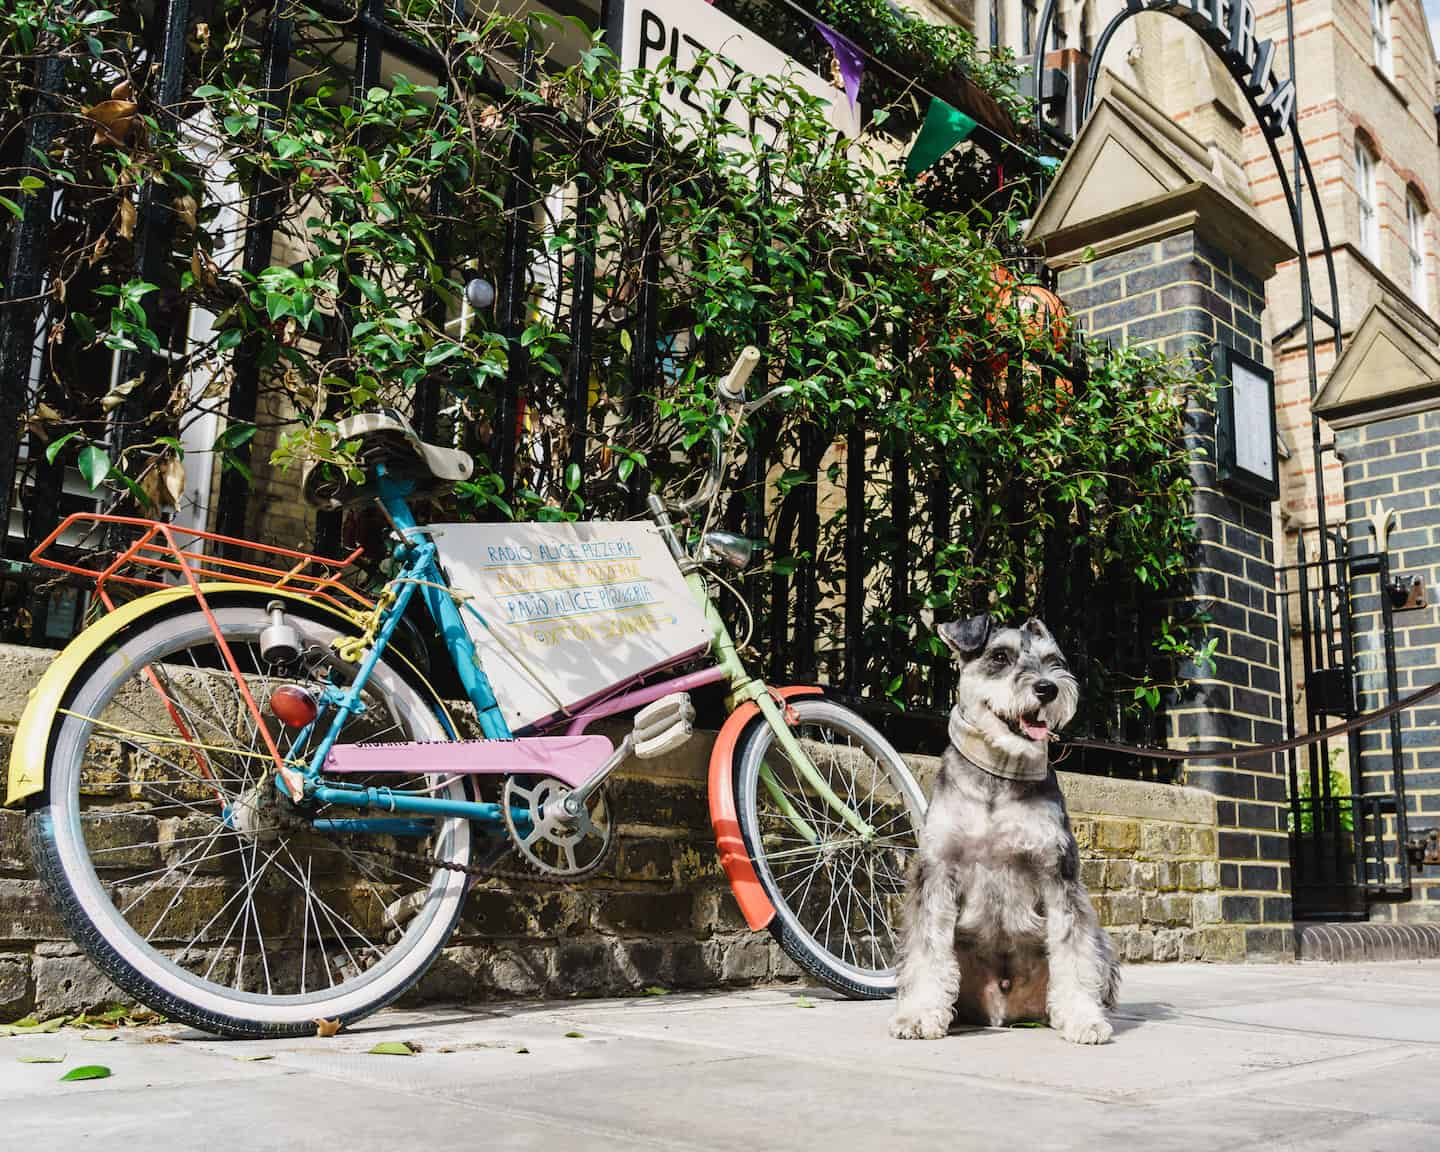 My Dog Friendly London By Rusty Red The Schnauzer | Dog Friendly Shoreditch and Hoxton Radio Alice 1